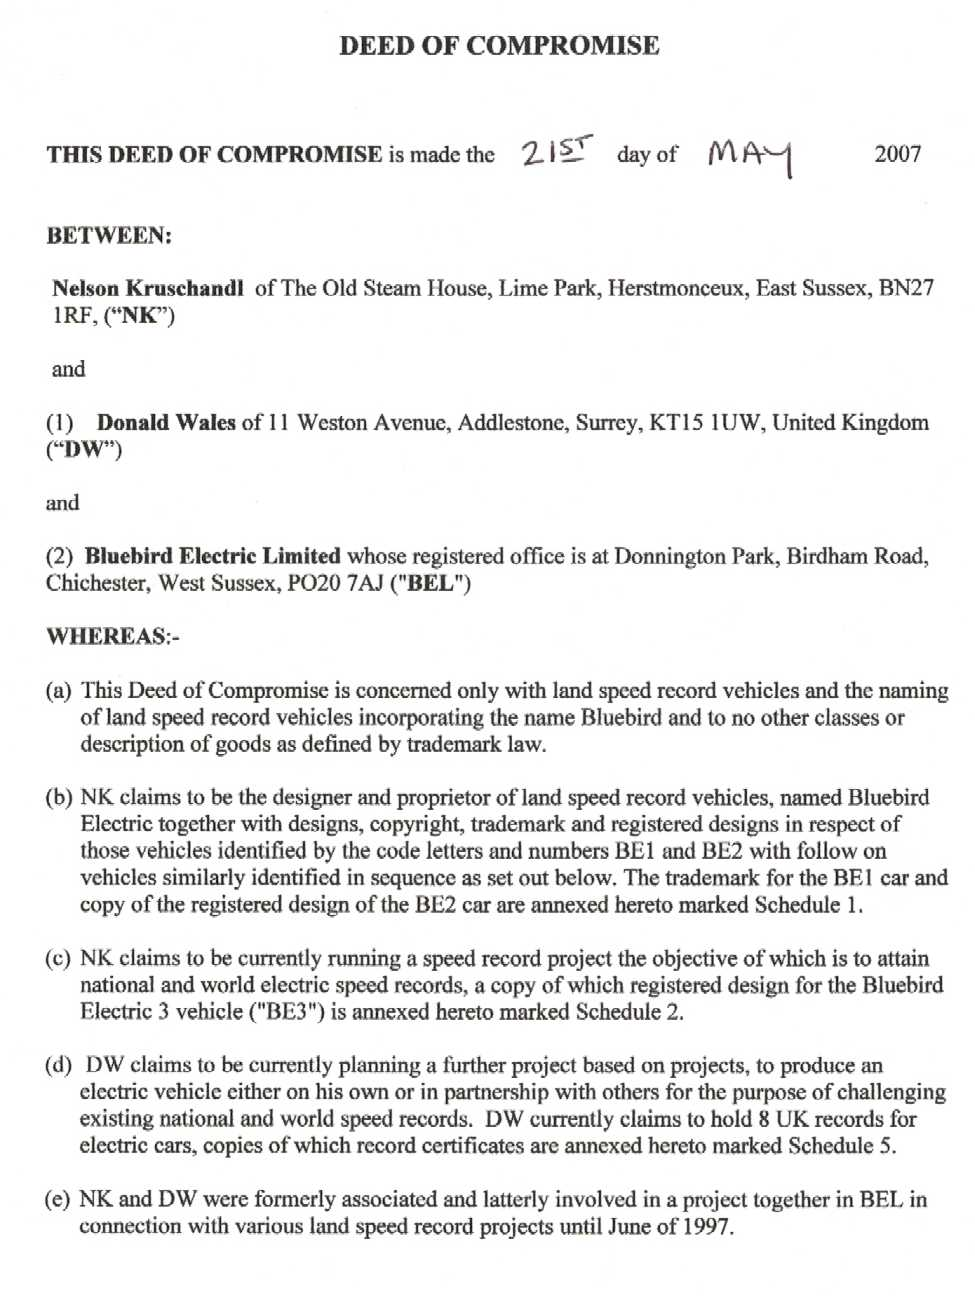 Agreement between Nelson Kruschandl and Don Wales as to use of the name Bluebird for electric vehicles